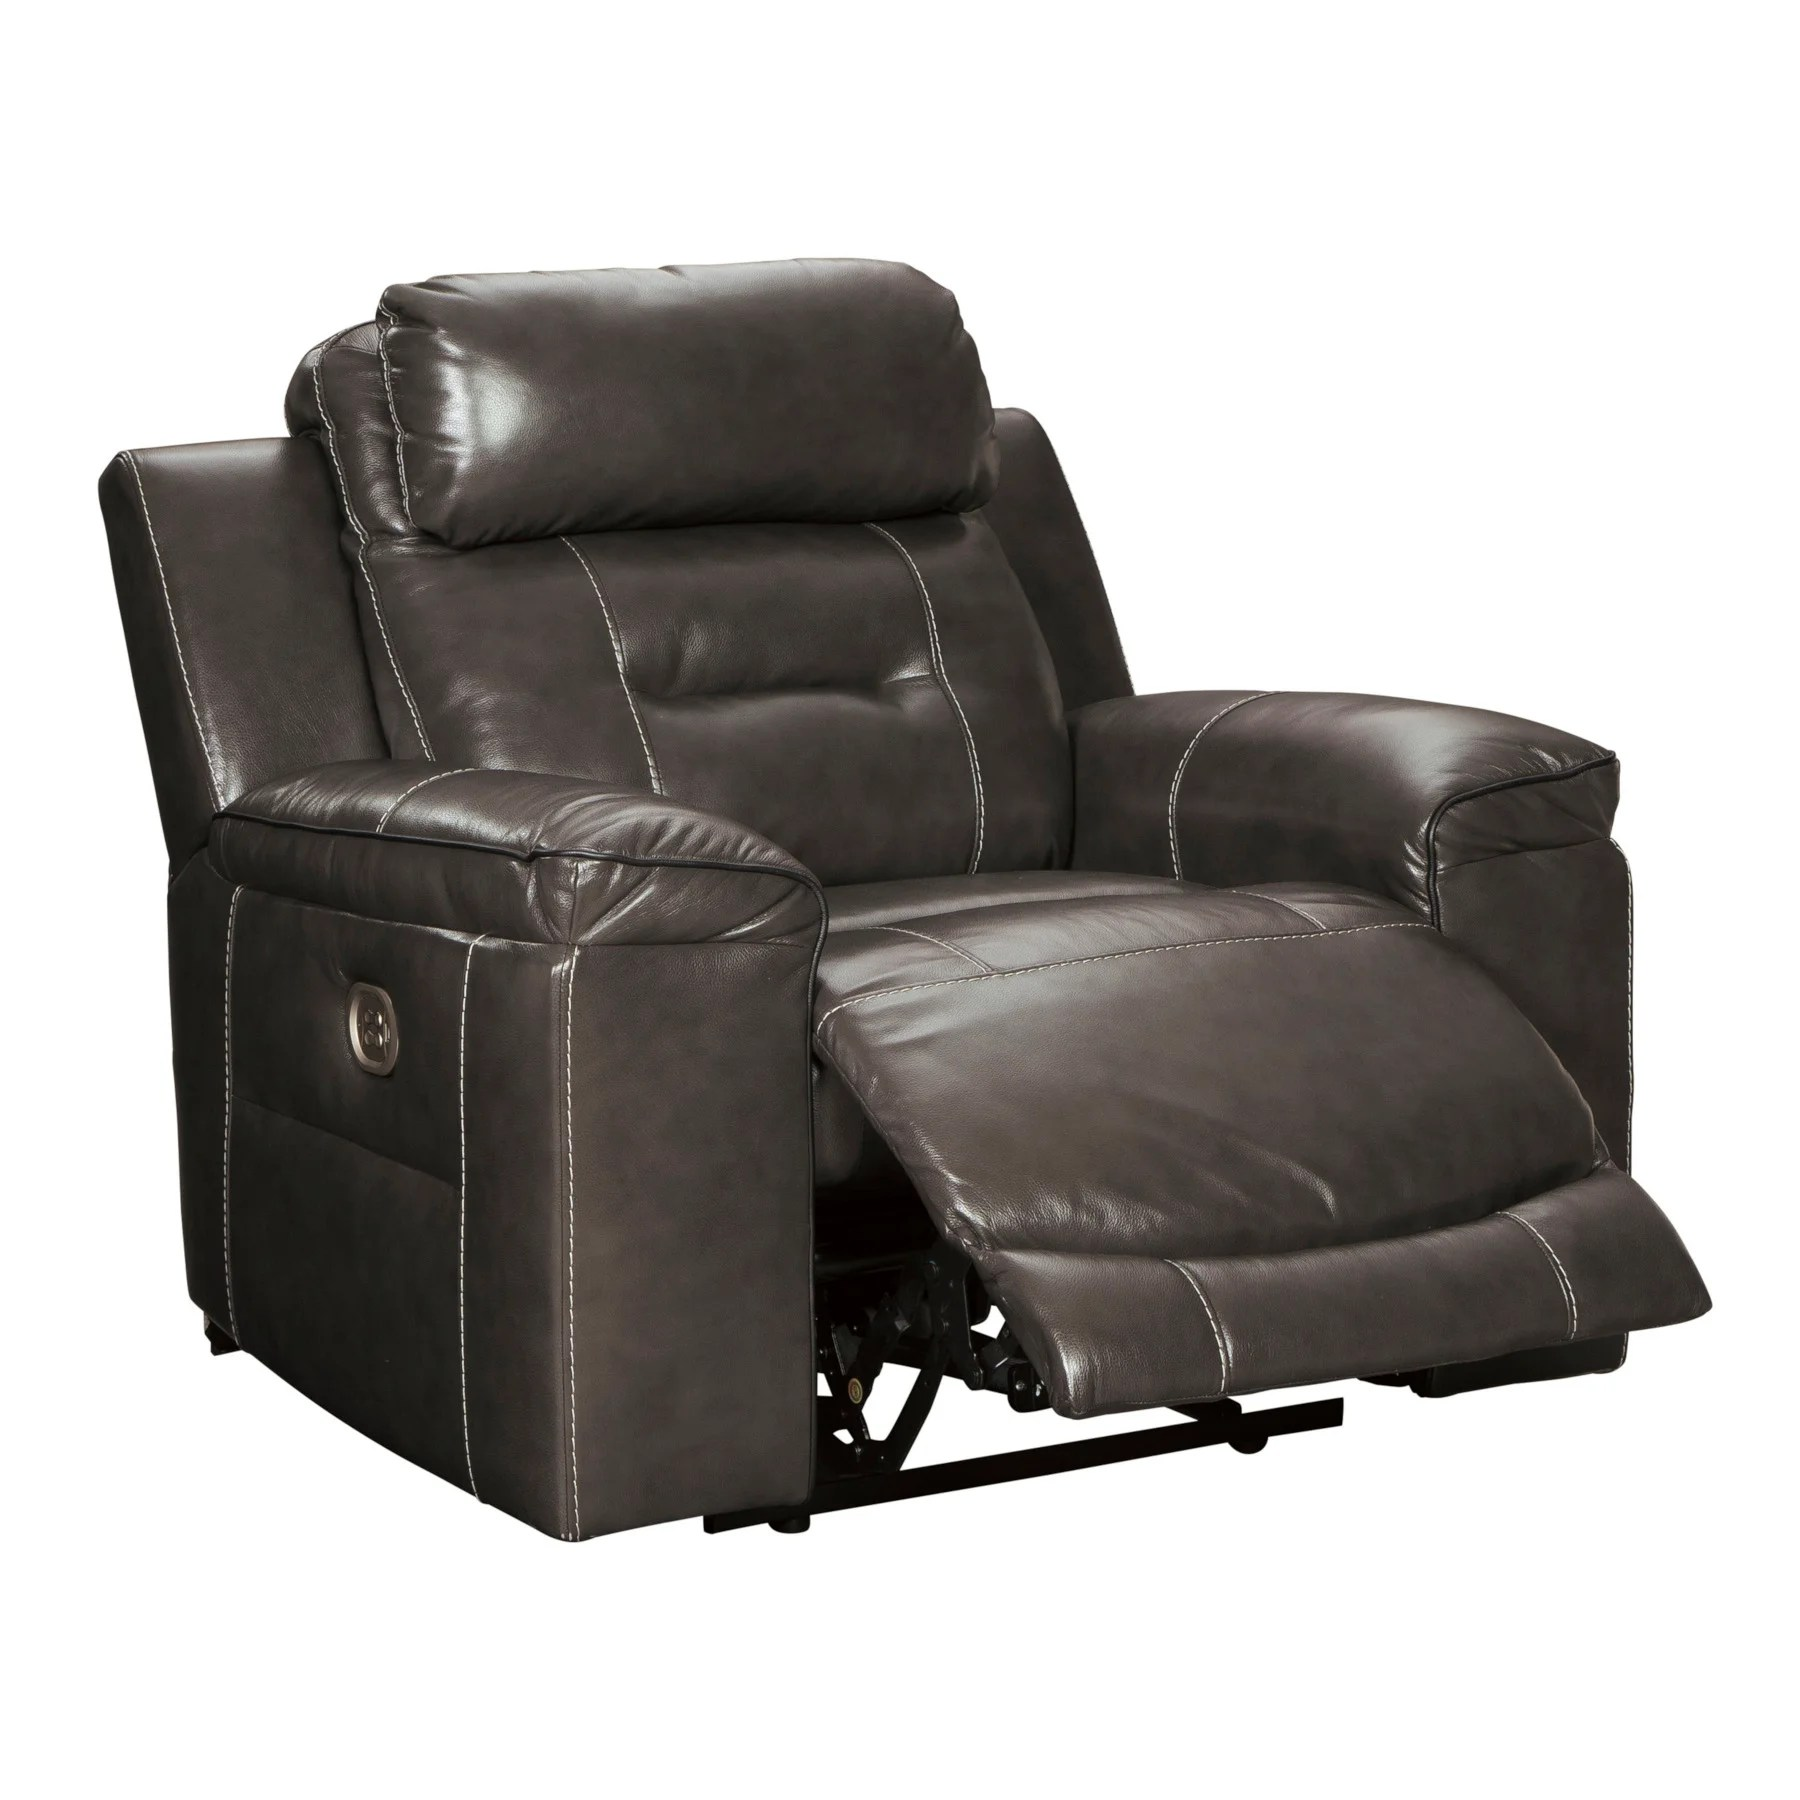 electric recliner sofa not working hartwell bench cushion power recliners lift sofas ashley pomellato top grain leather